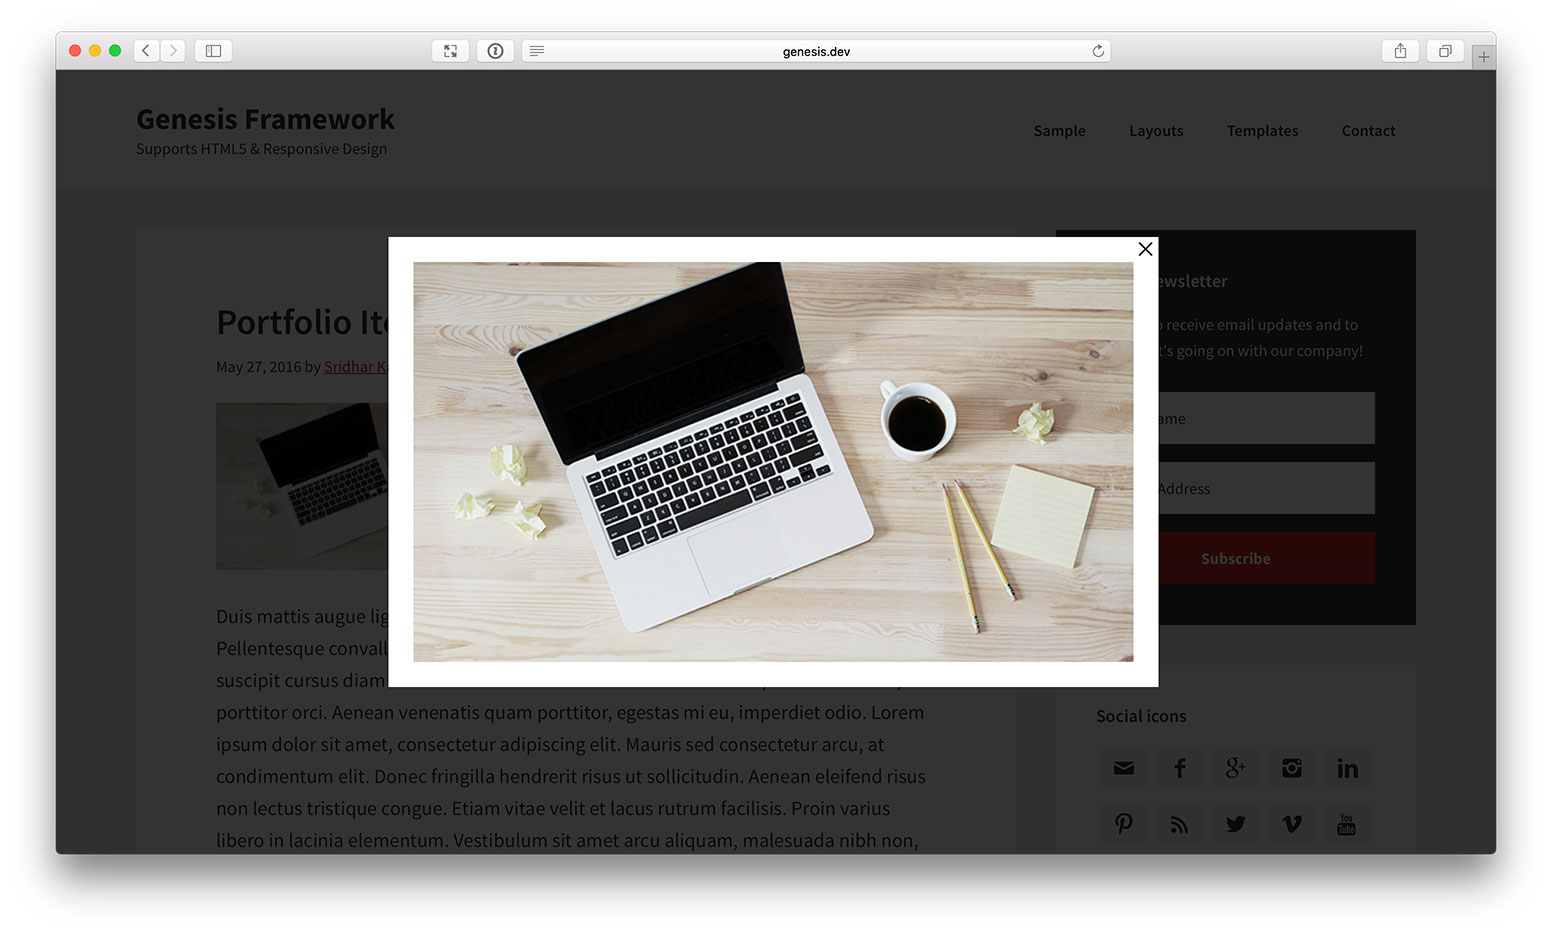 how to open portfolio image in a lightbox using in genesis